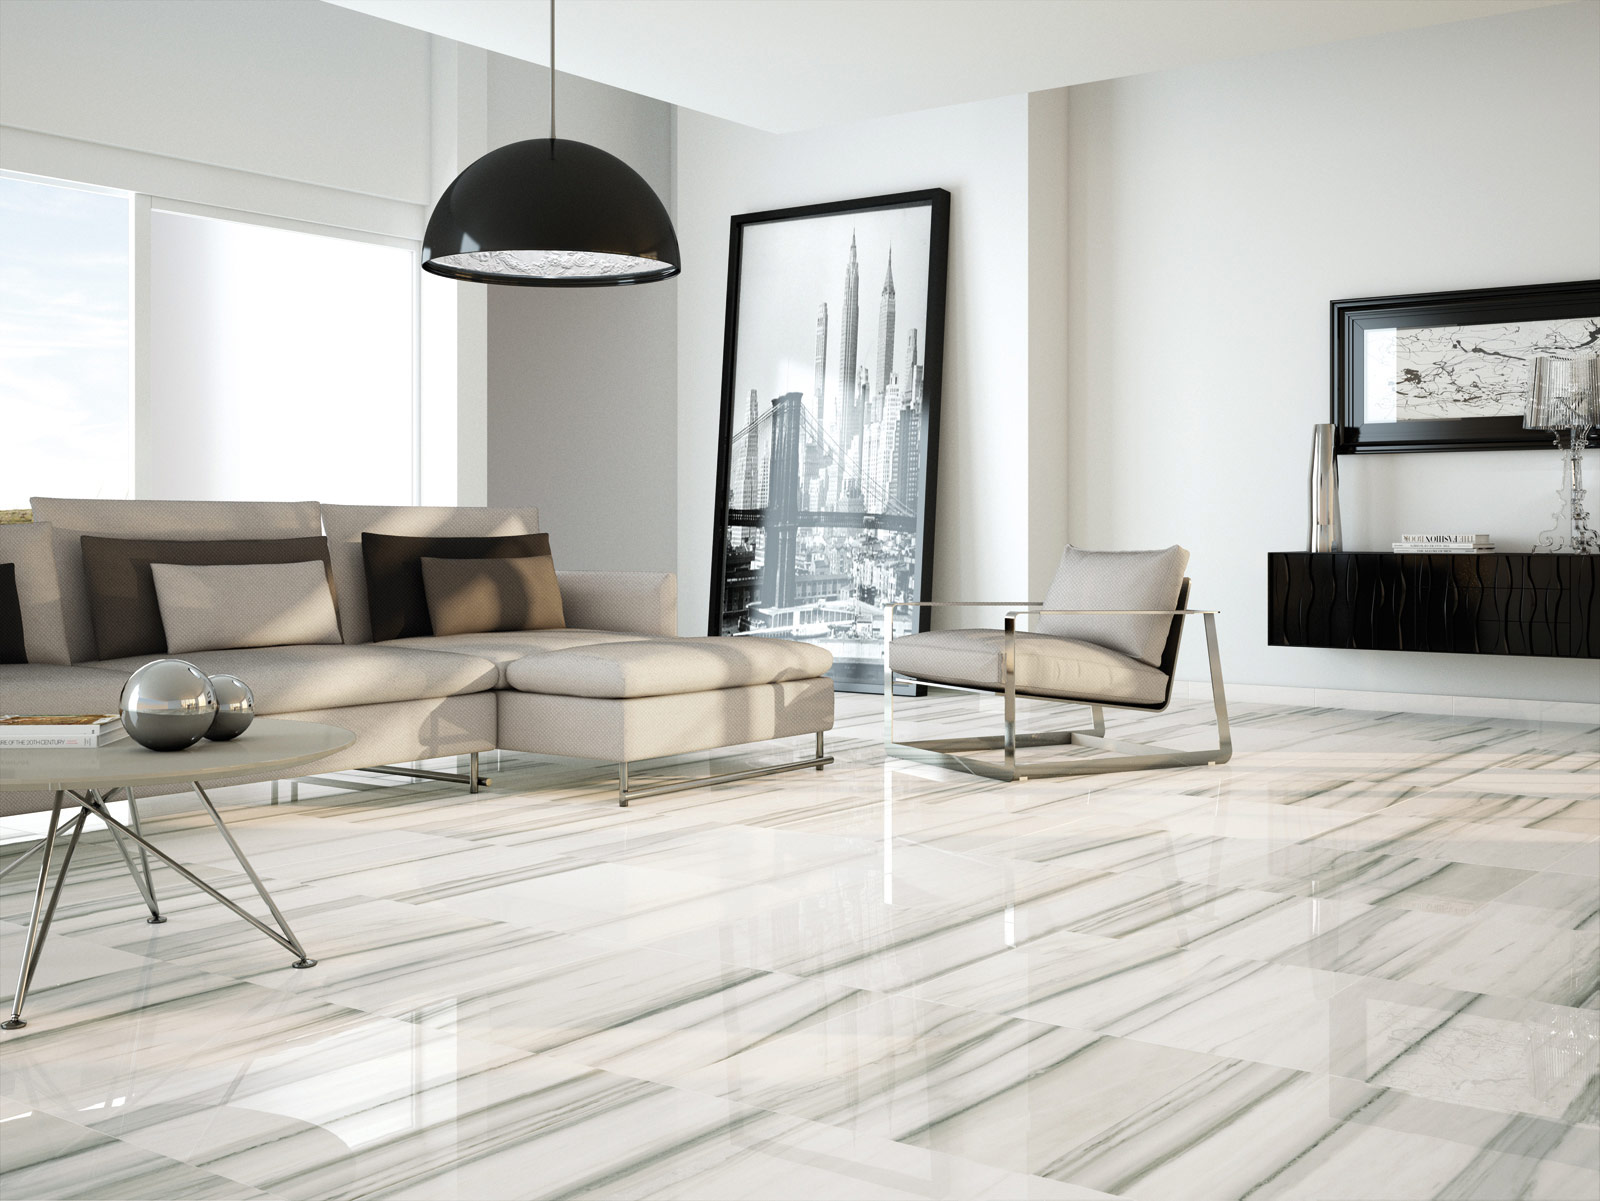 Carrelage salon inspiration d co marazzi for Carrelage marazzi